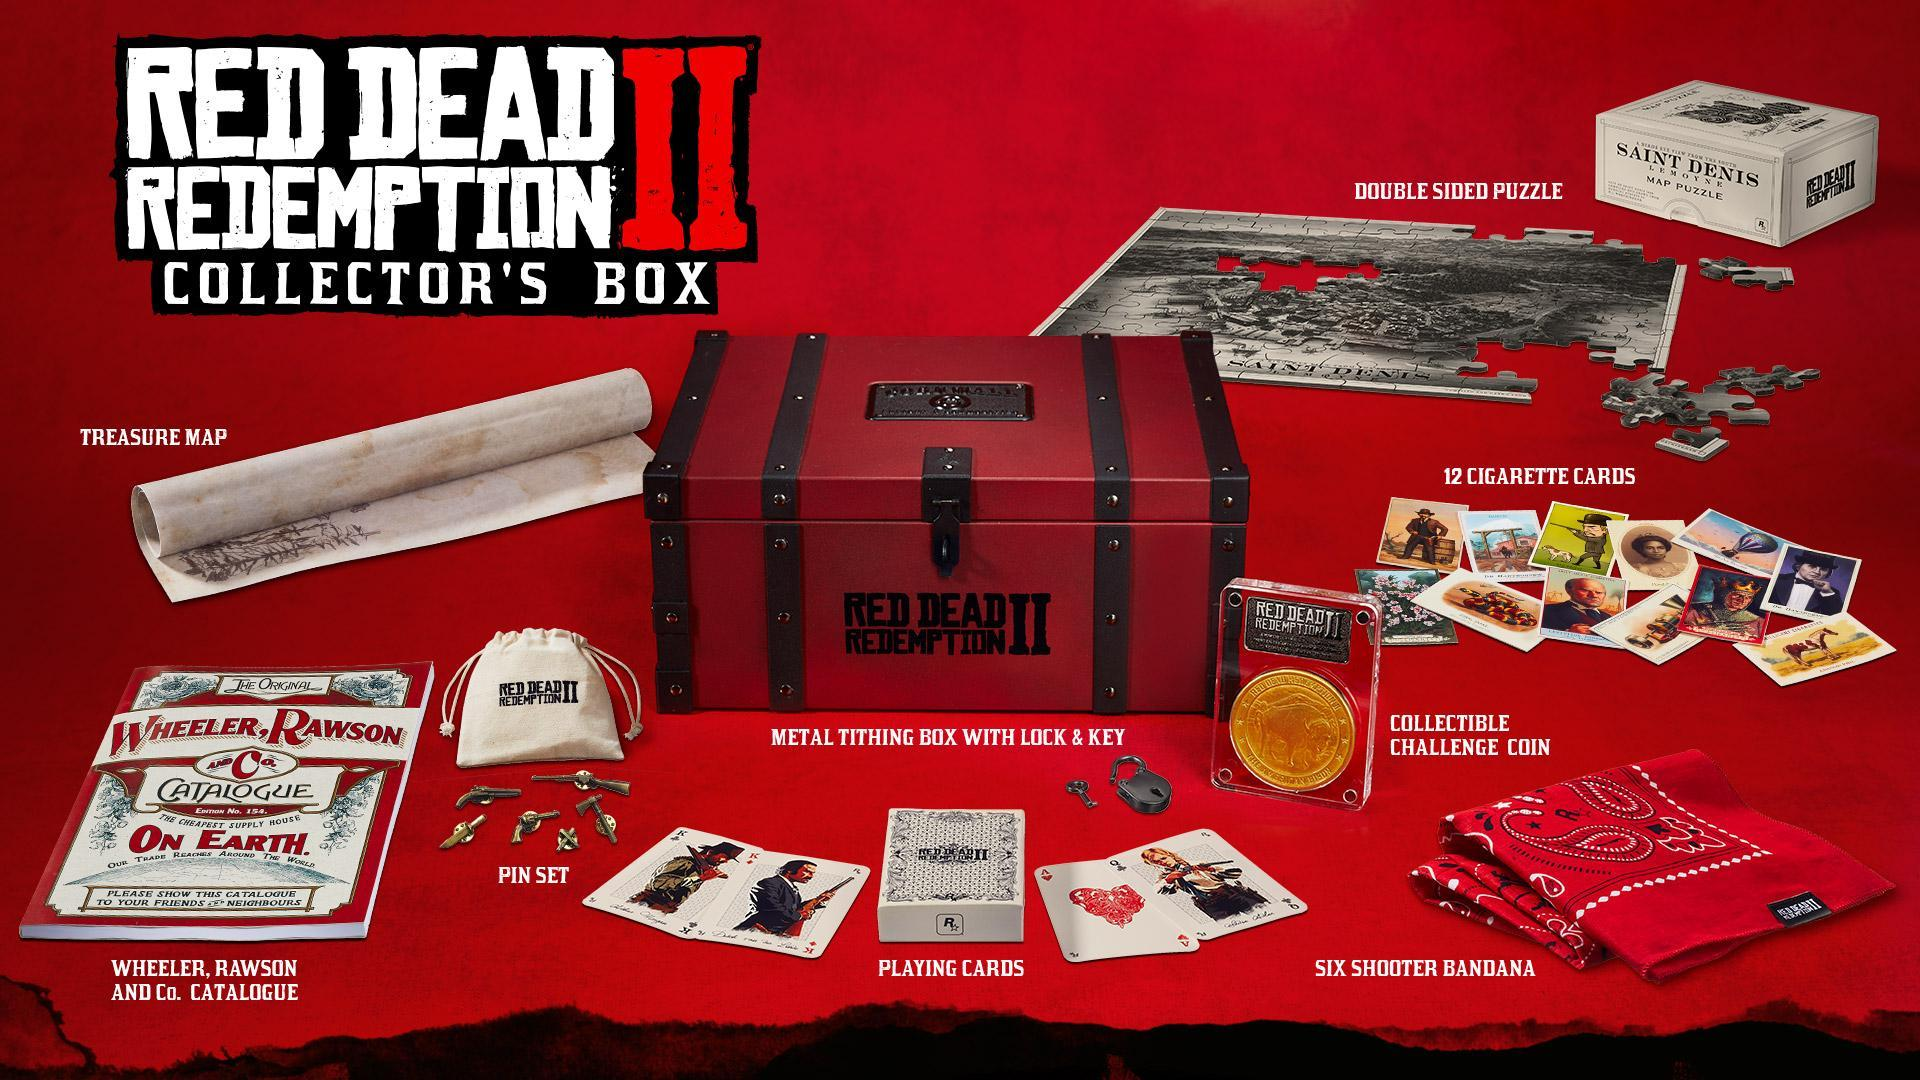 Red Dead Redemption 2 Collectors box is coming to Gamestop